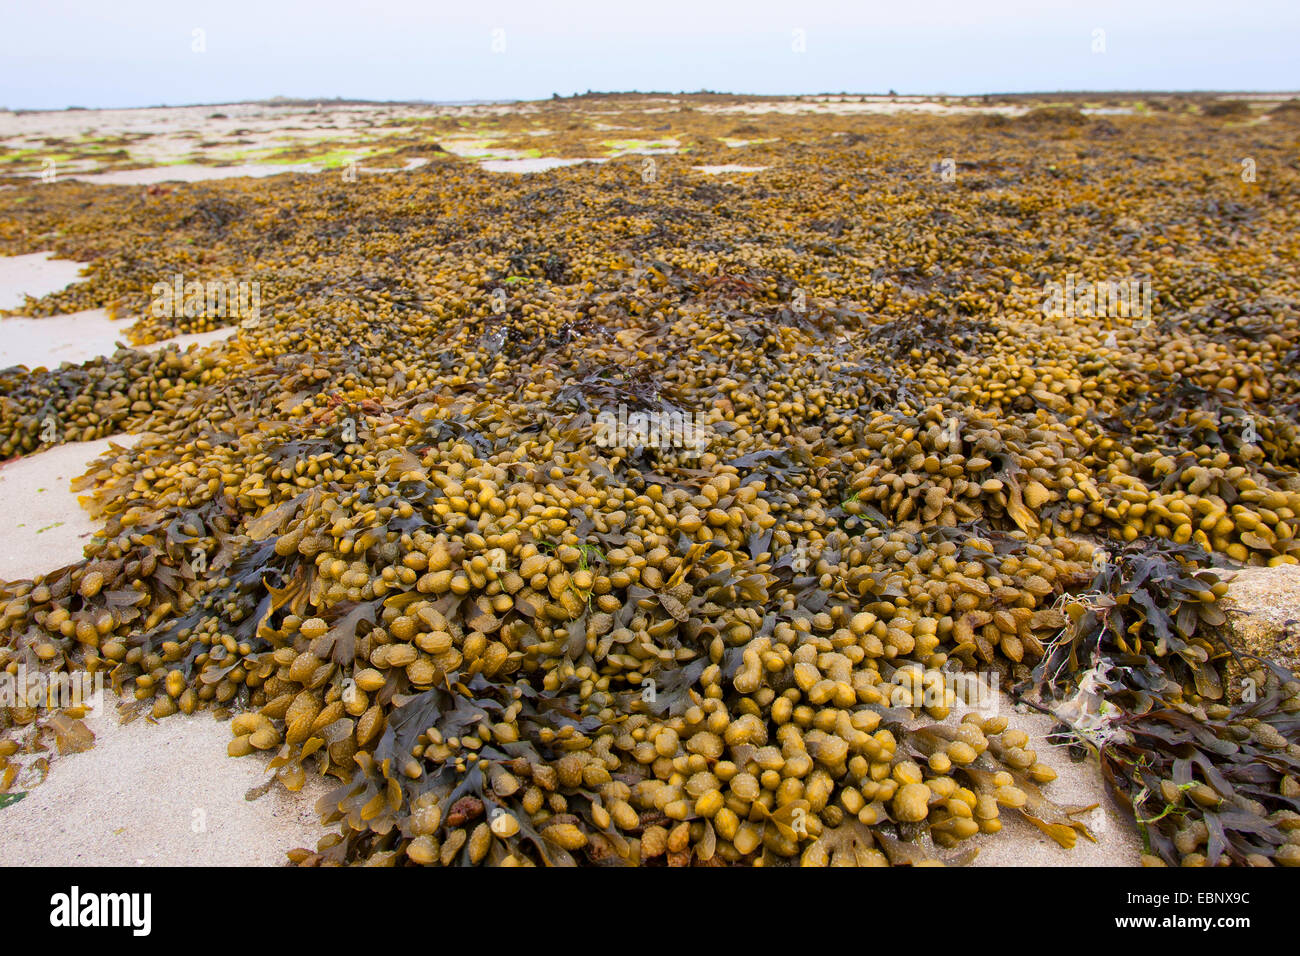 Spiral wrack, Flat wrack, Jelly bags, Spiraled Wrack (Fucus spiralis), washed up wrack on the beach, Germany - Stock Image